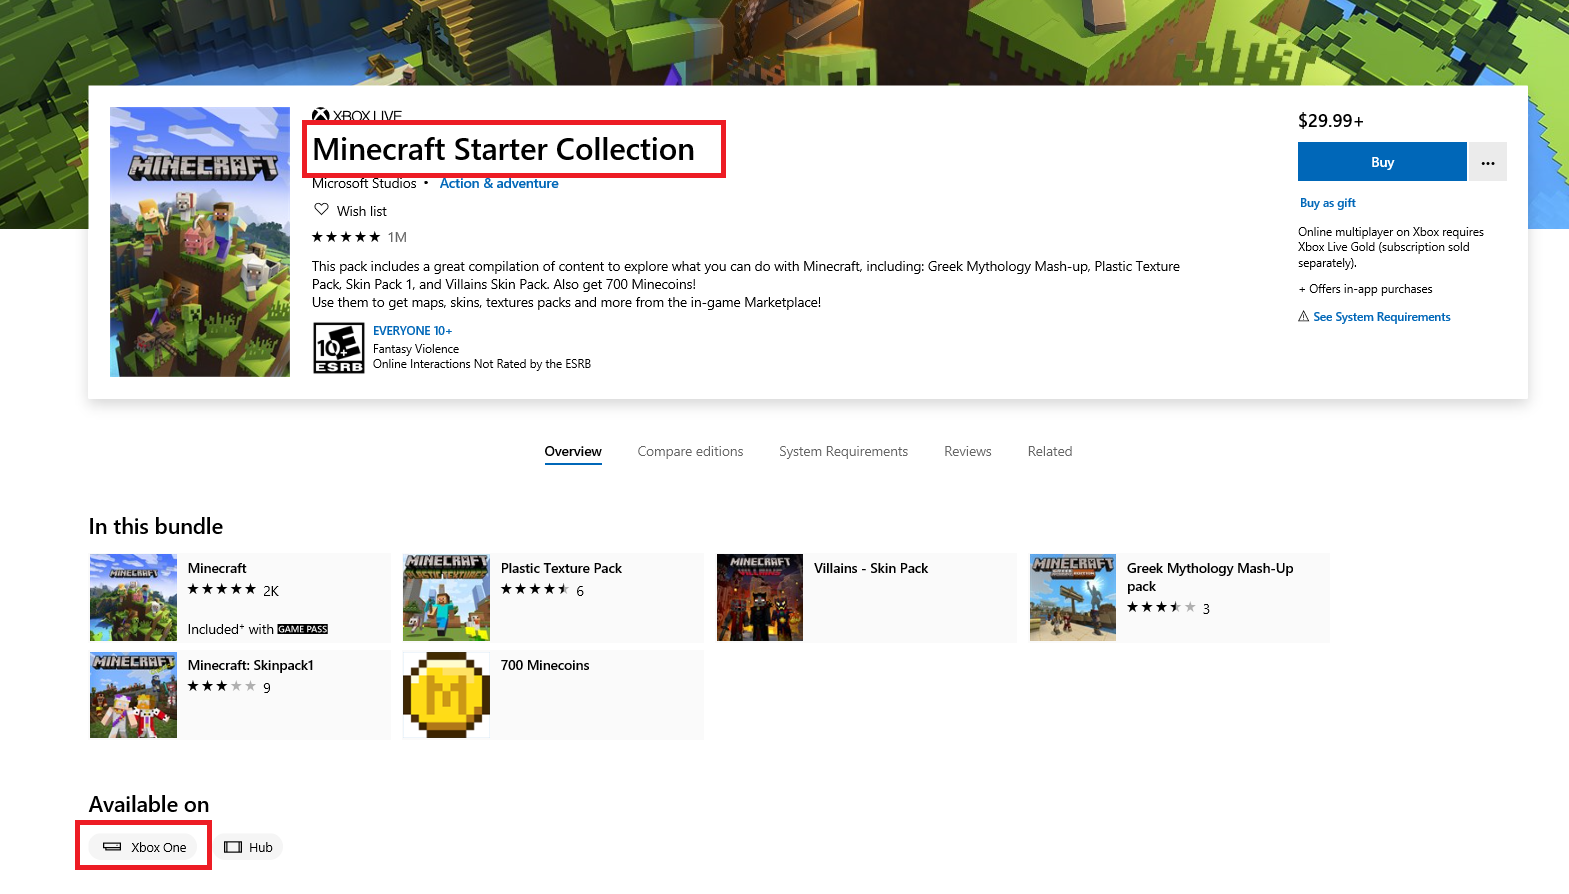 Refund option not available for Minecraft Starter Collection 862d3756-fb82-4174-b532-f47bed2d4c72?upload=true.png